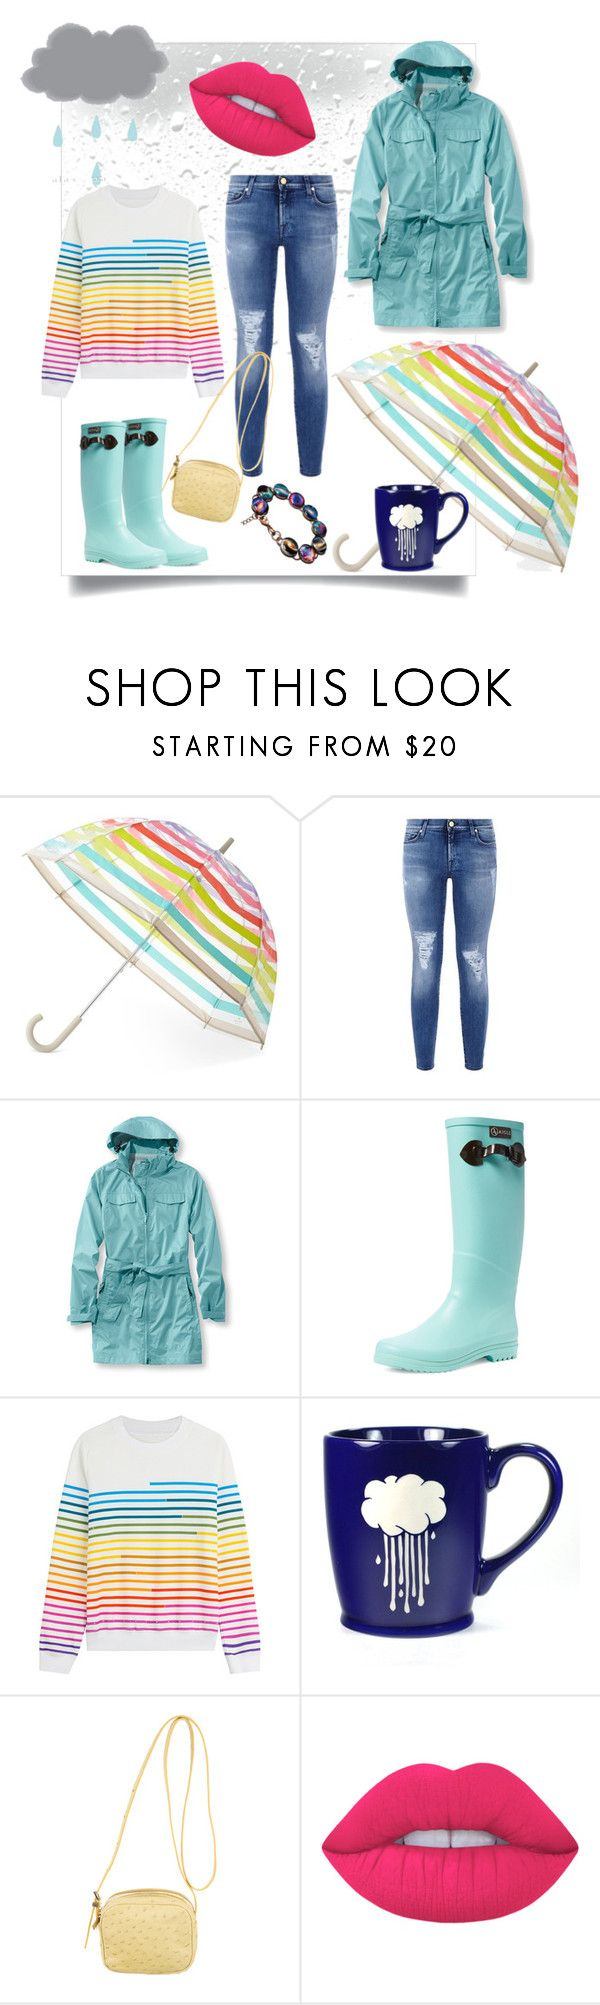 Rain🌧 by mahshid-afshar on Polyvore featuring мода, Mary Katrantzou, 7 For All Mankind, Aigle, The Row, Kate Spade, Lime Crime and L.L.Bean